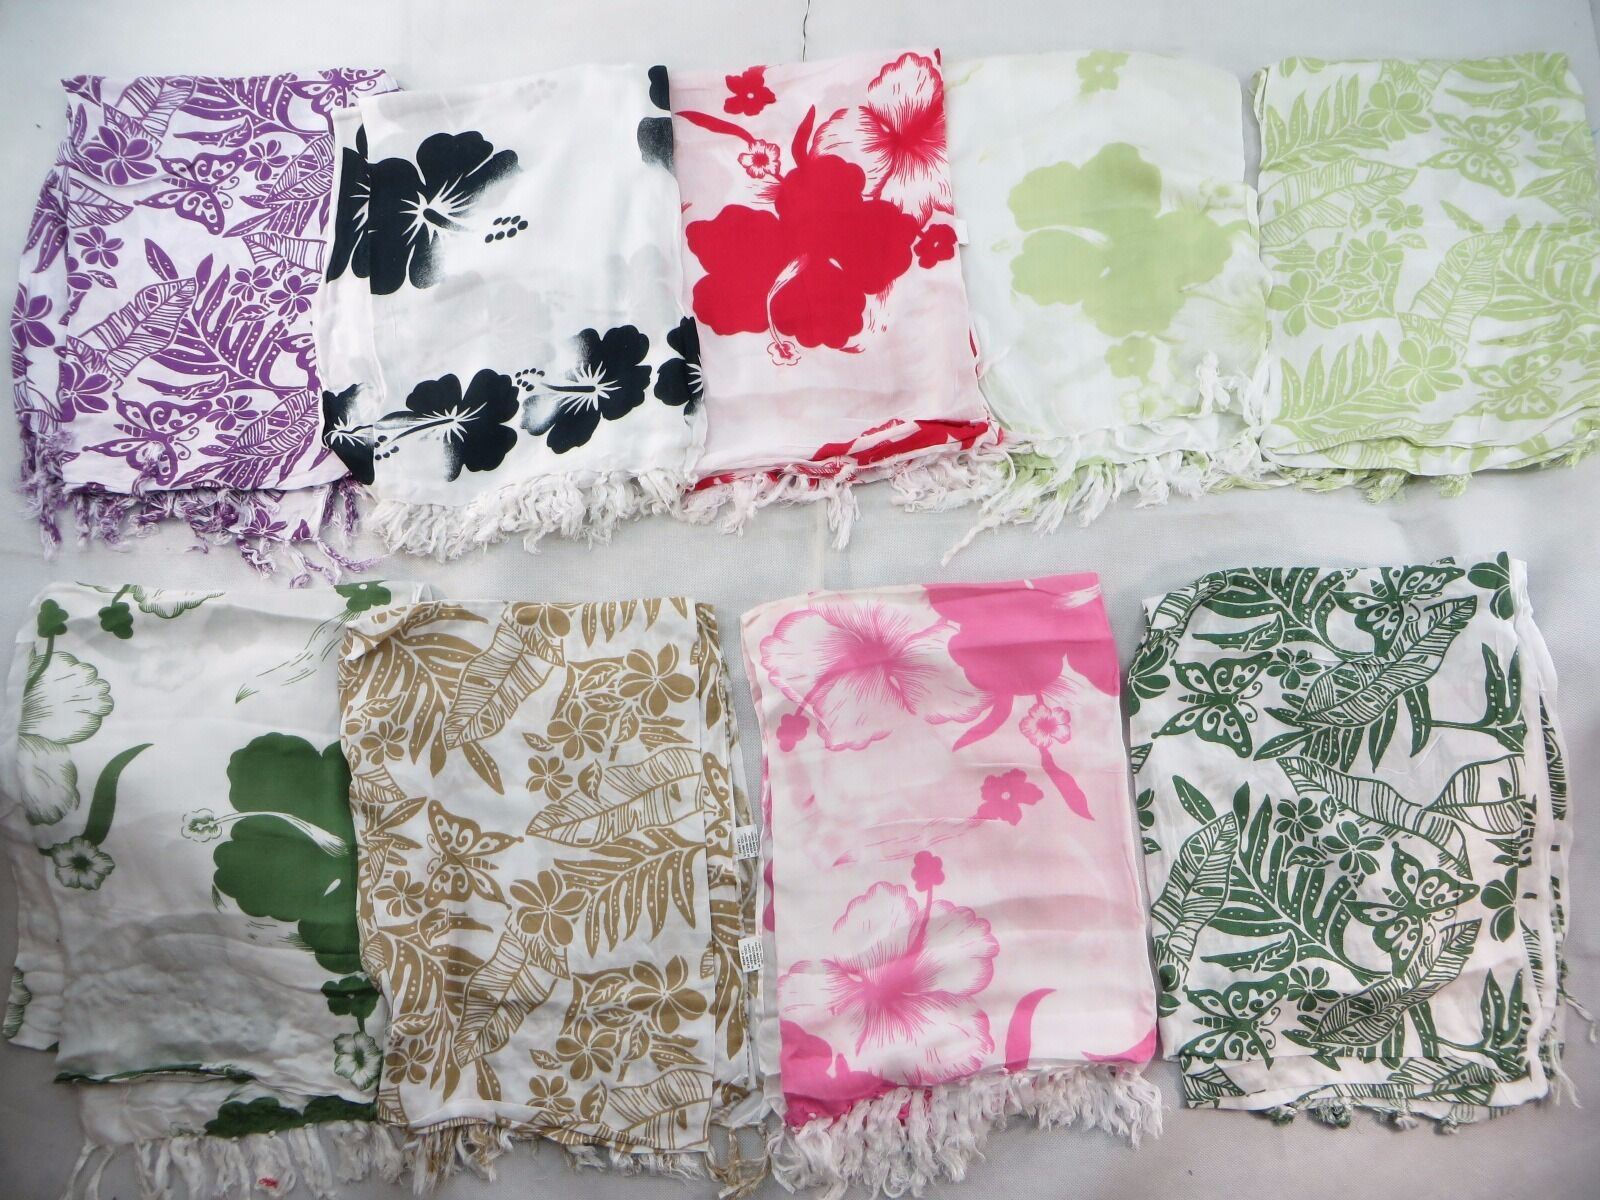 US SELLERLot of 10 aloha sarong florals plumier hibiscus palm leaf shawl...